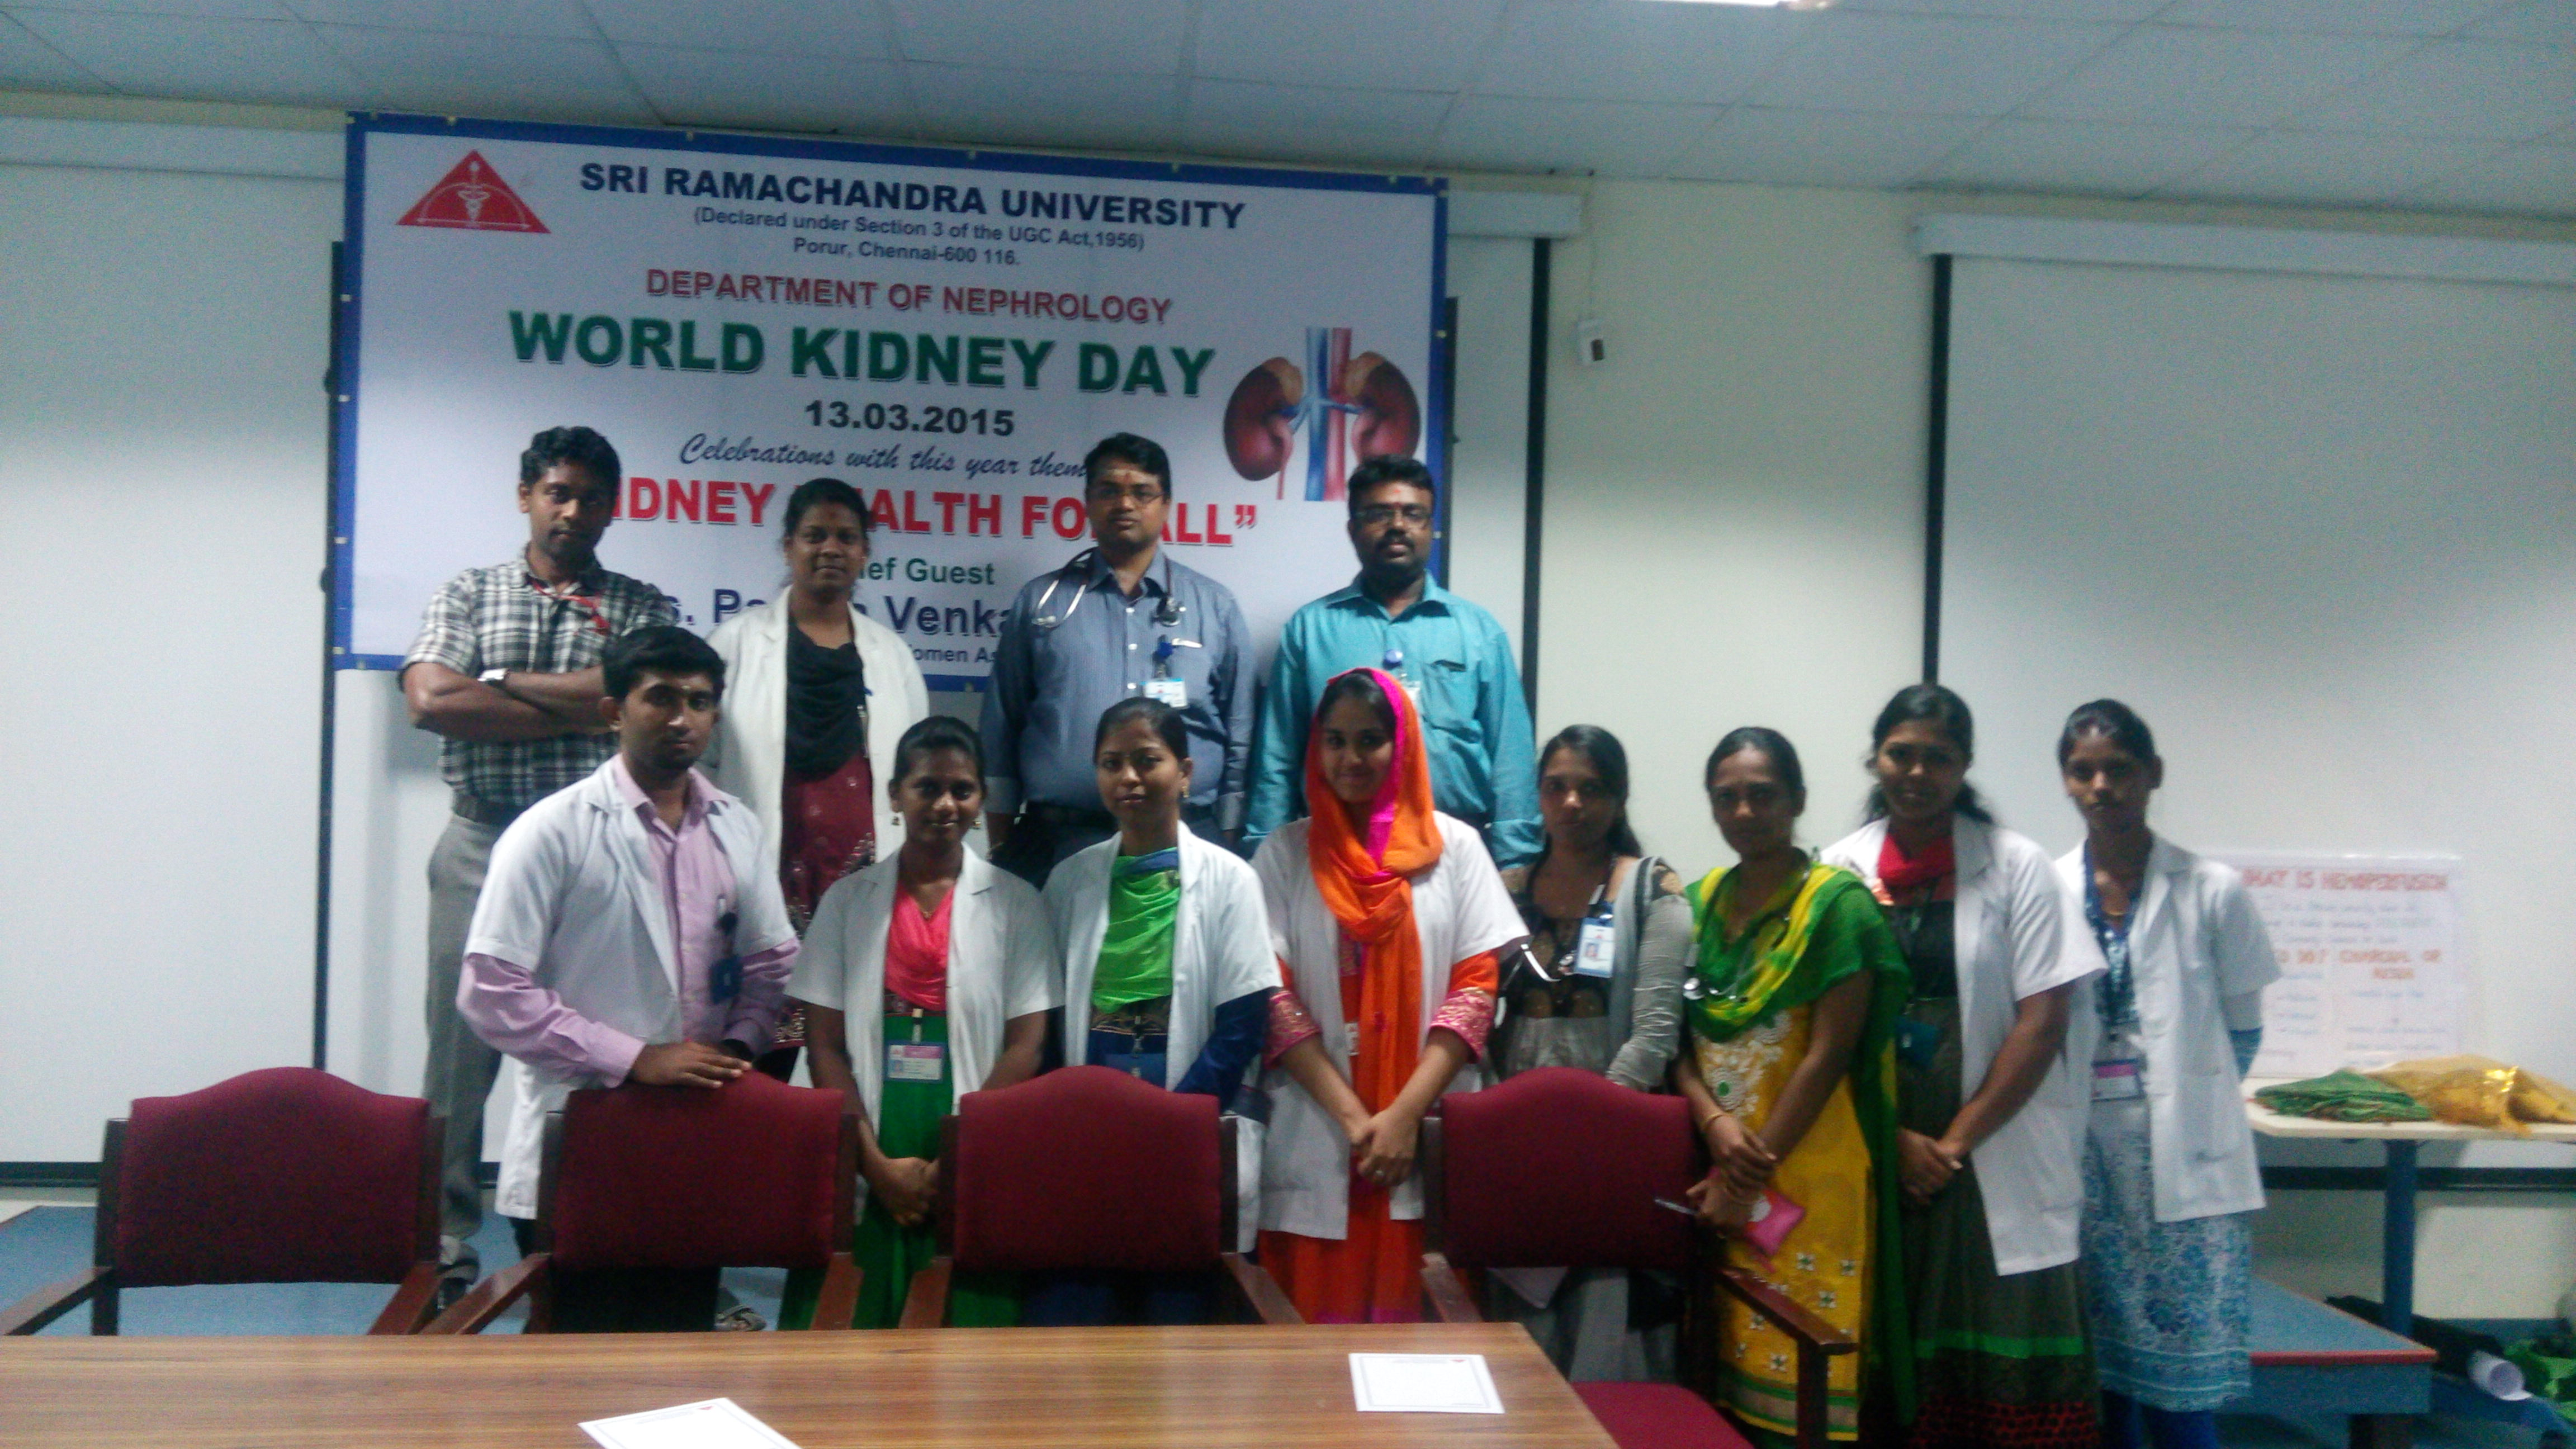 World Kidney Day celebration